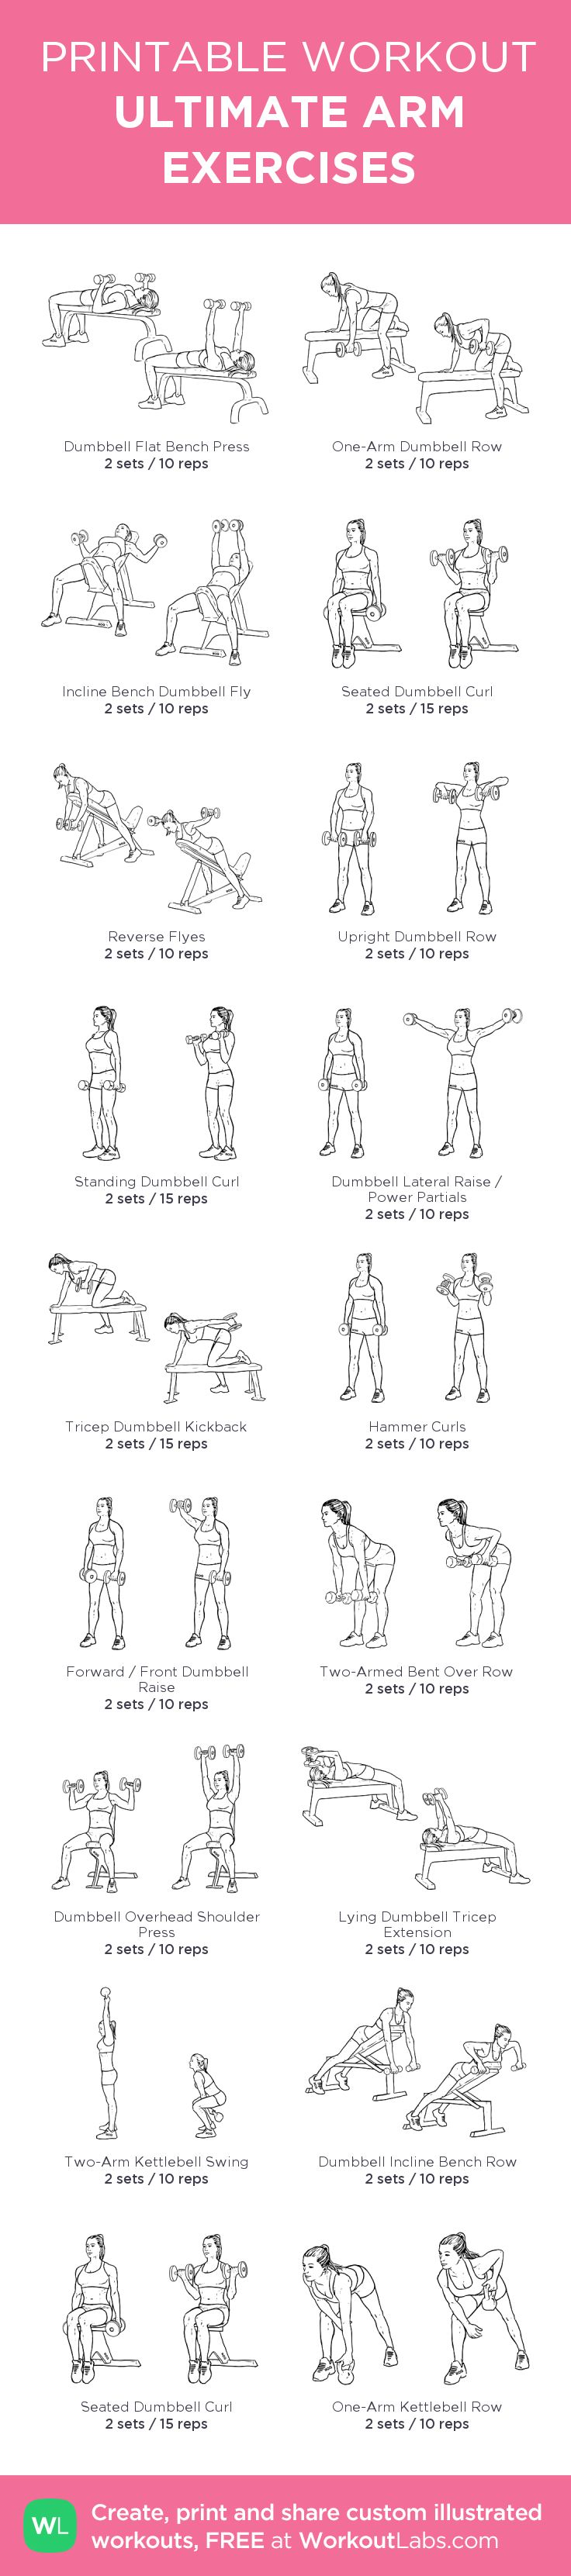 ULTIMATE ARM EXERCISES: my visual workout created at WorkoutLabs.com • Click through to customize and download as a FREE PDF! #customworkout